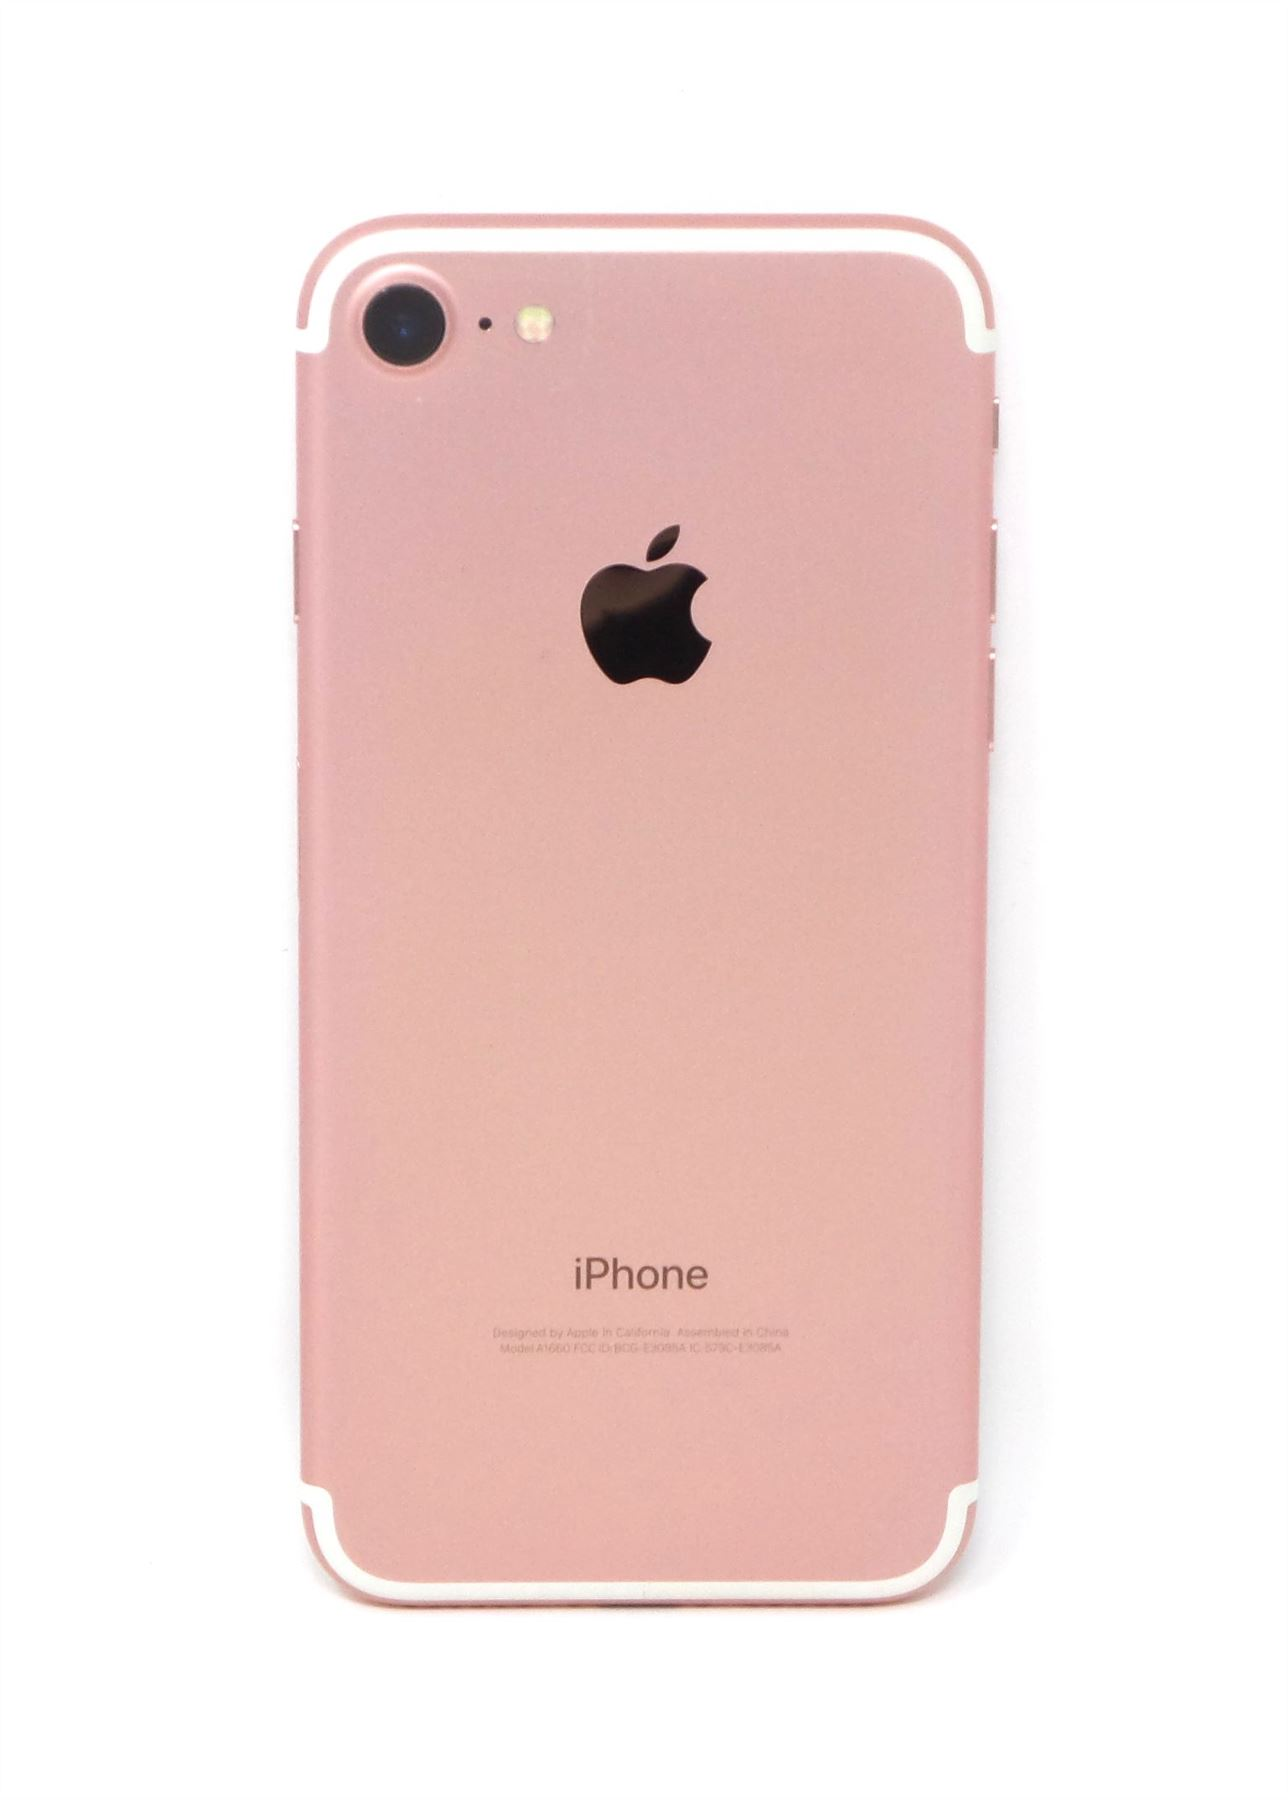 Apple-iPhone-7-Carrier-Option-AT-amp-T-T-Mobile-Unlocked-4G-32-128-256GB-All-Colors thumbnail 22